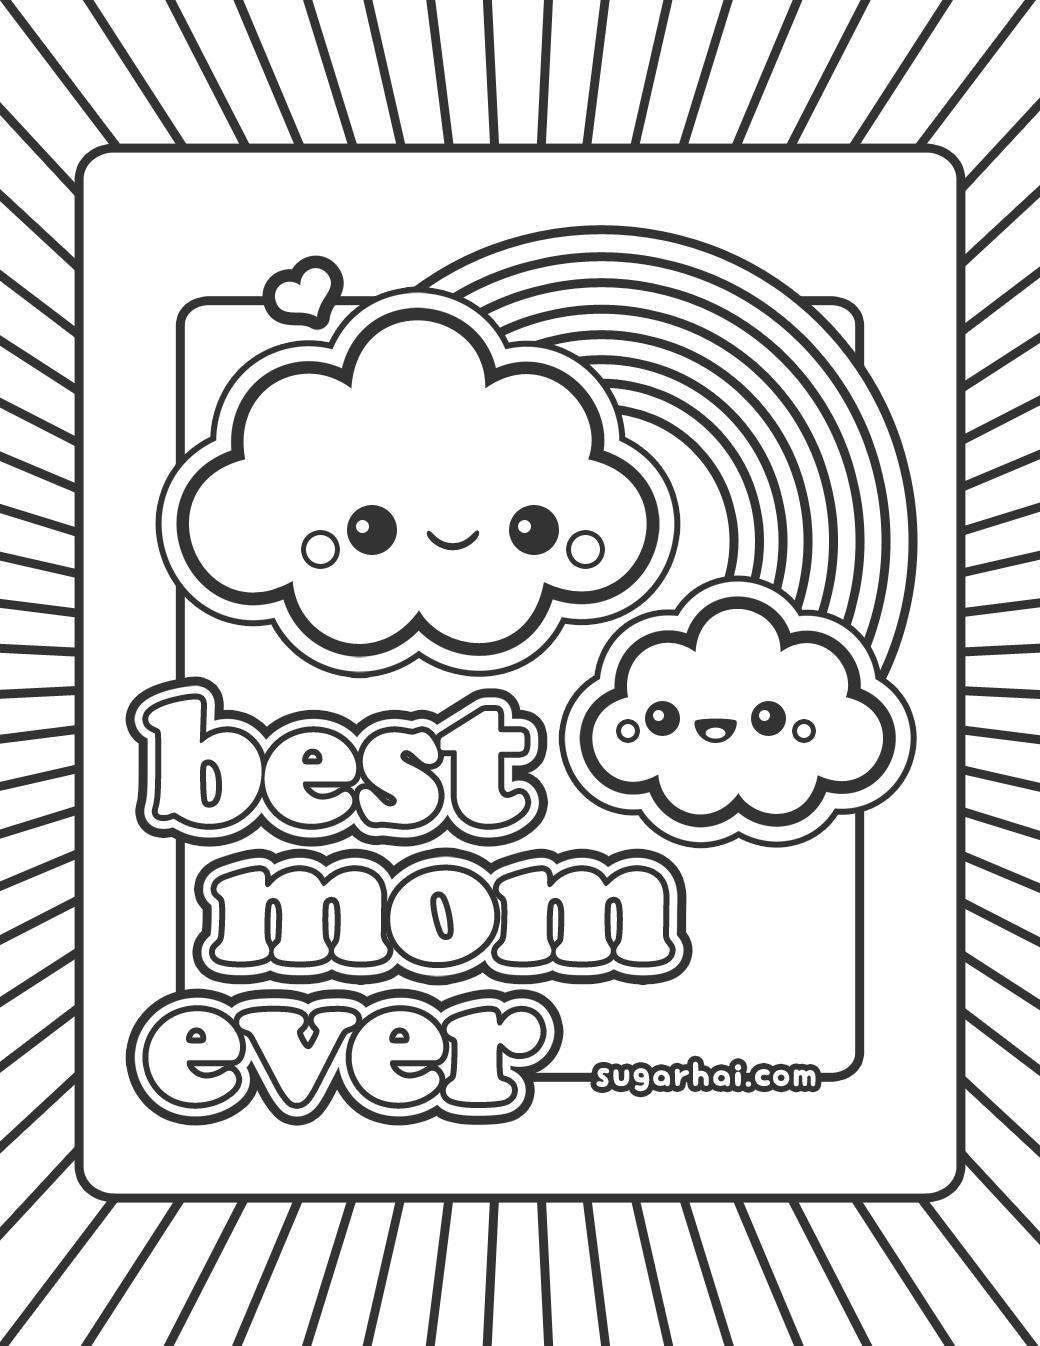 mom birthday coloring pages ; mom-birthday-coloring-pages-1